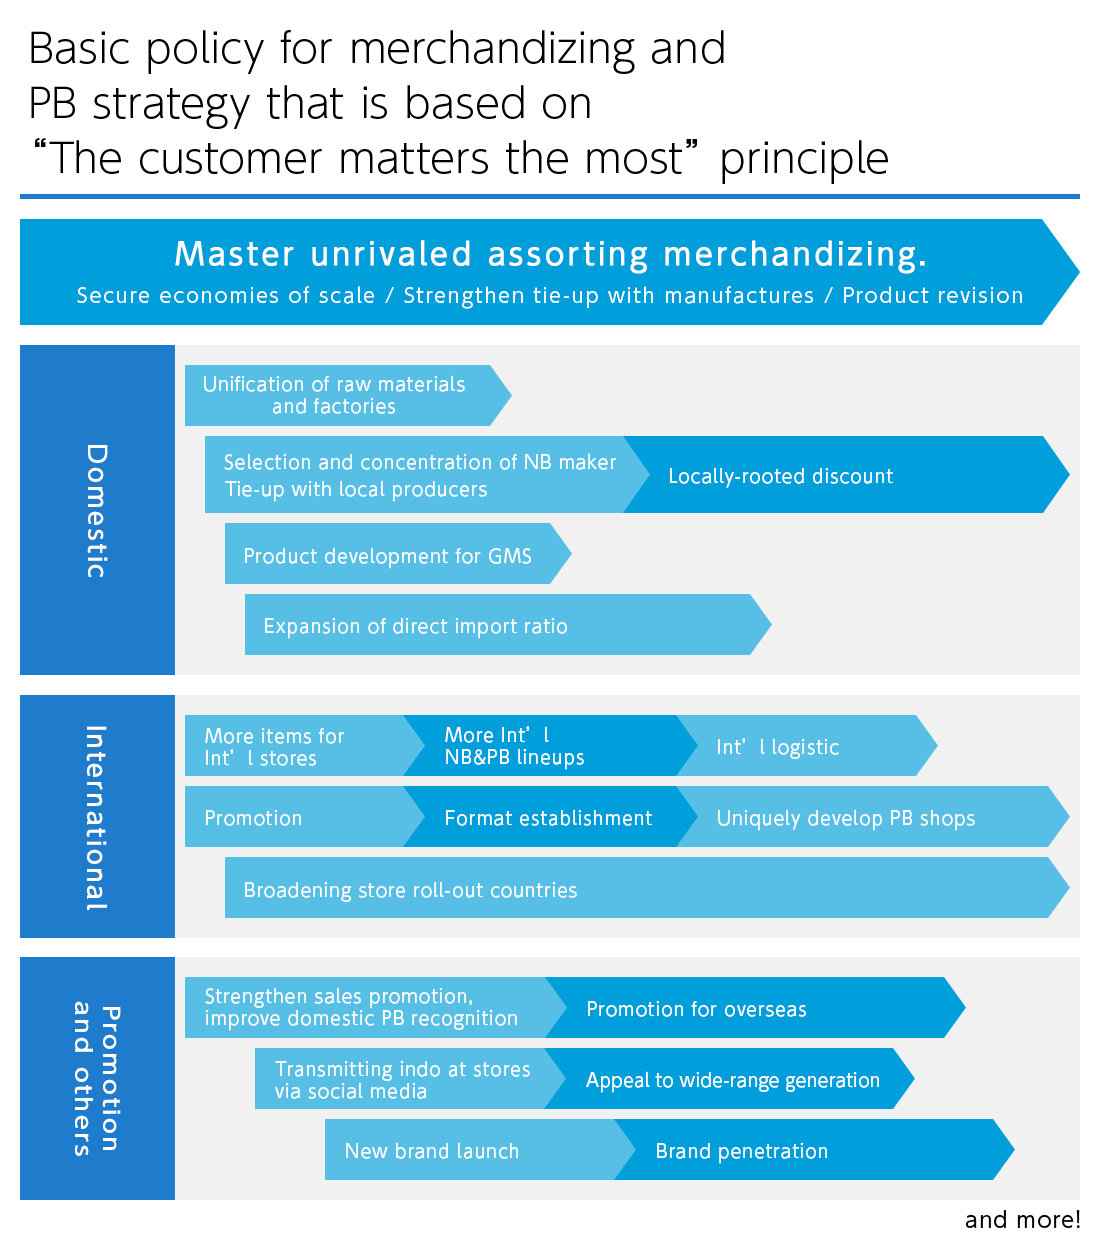 Basic policy for merchandizing and PB strategy that is based on